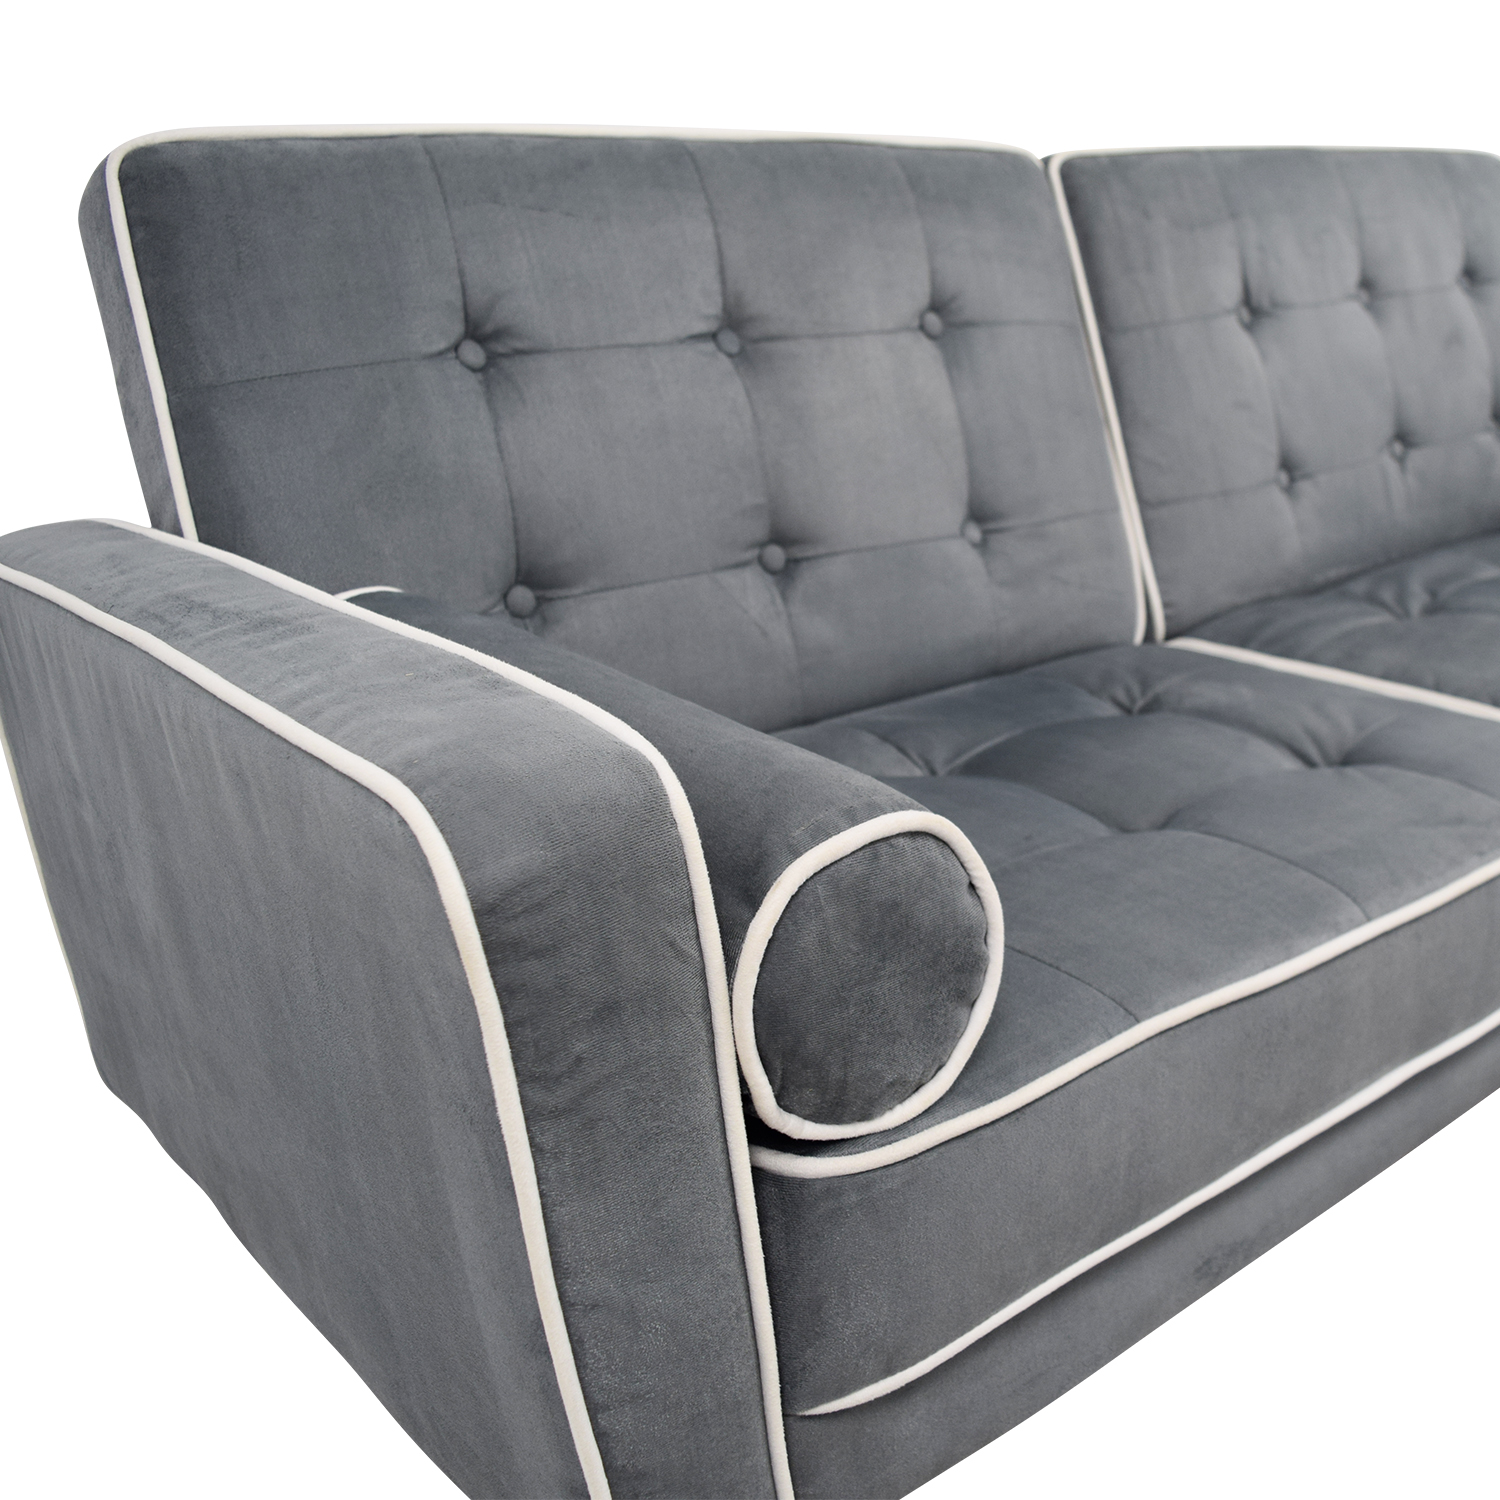 Pleasant 45 Off Wayfair Wayfair Grey Tufted Sofa Bed Sofas Gamerscity Chair Design For Home Gamerscityorg